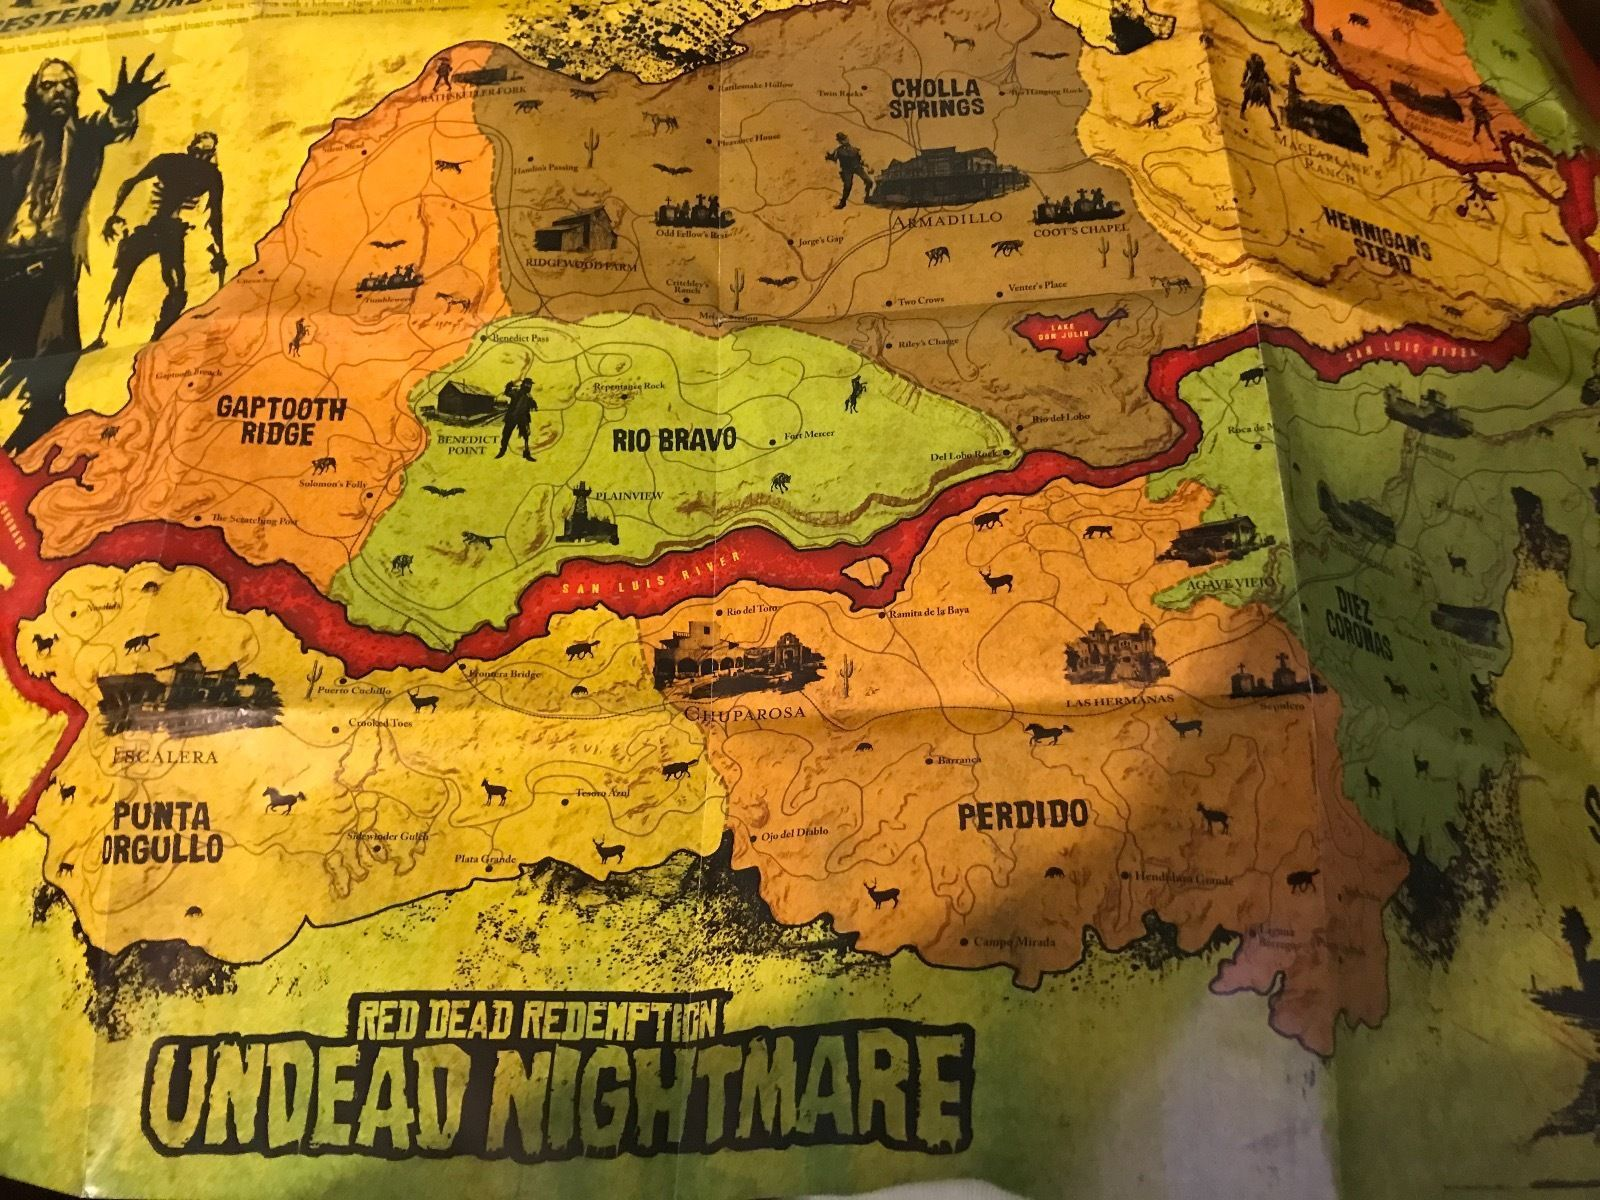 Red dead redemption undead nightmare 2 sided mapposter 1812 game red dead redemption undead nightmare 2 sided mapposter gumiabroncs Gallery